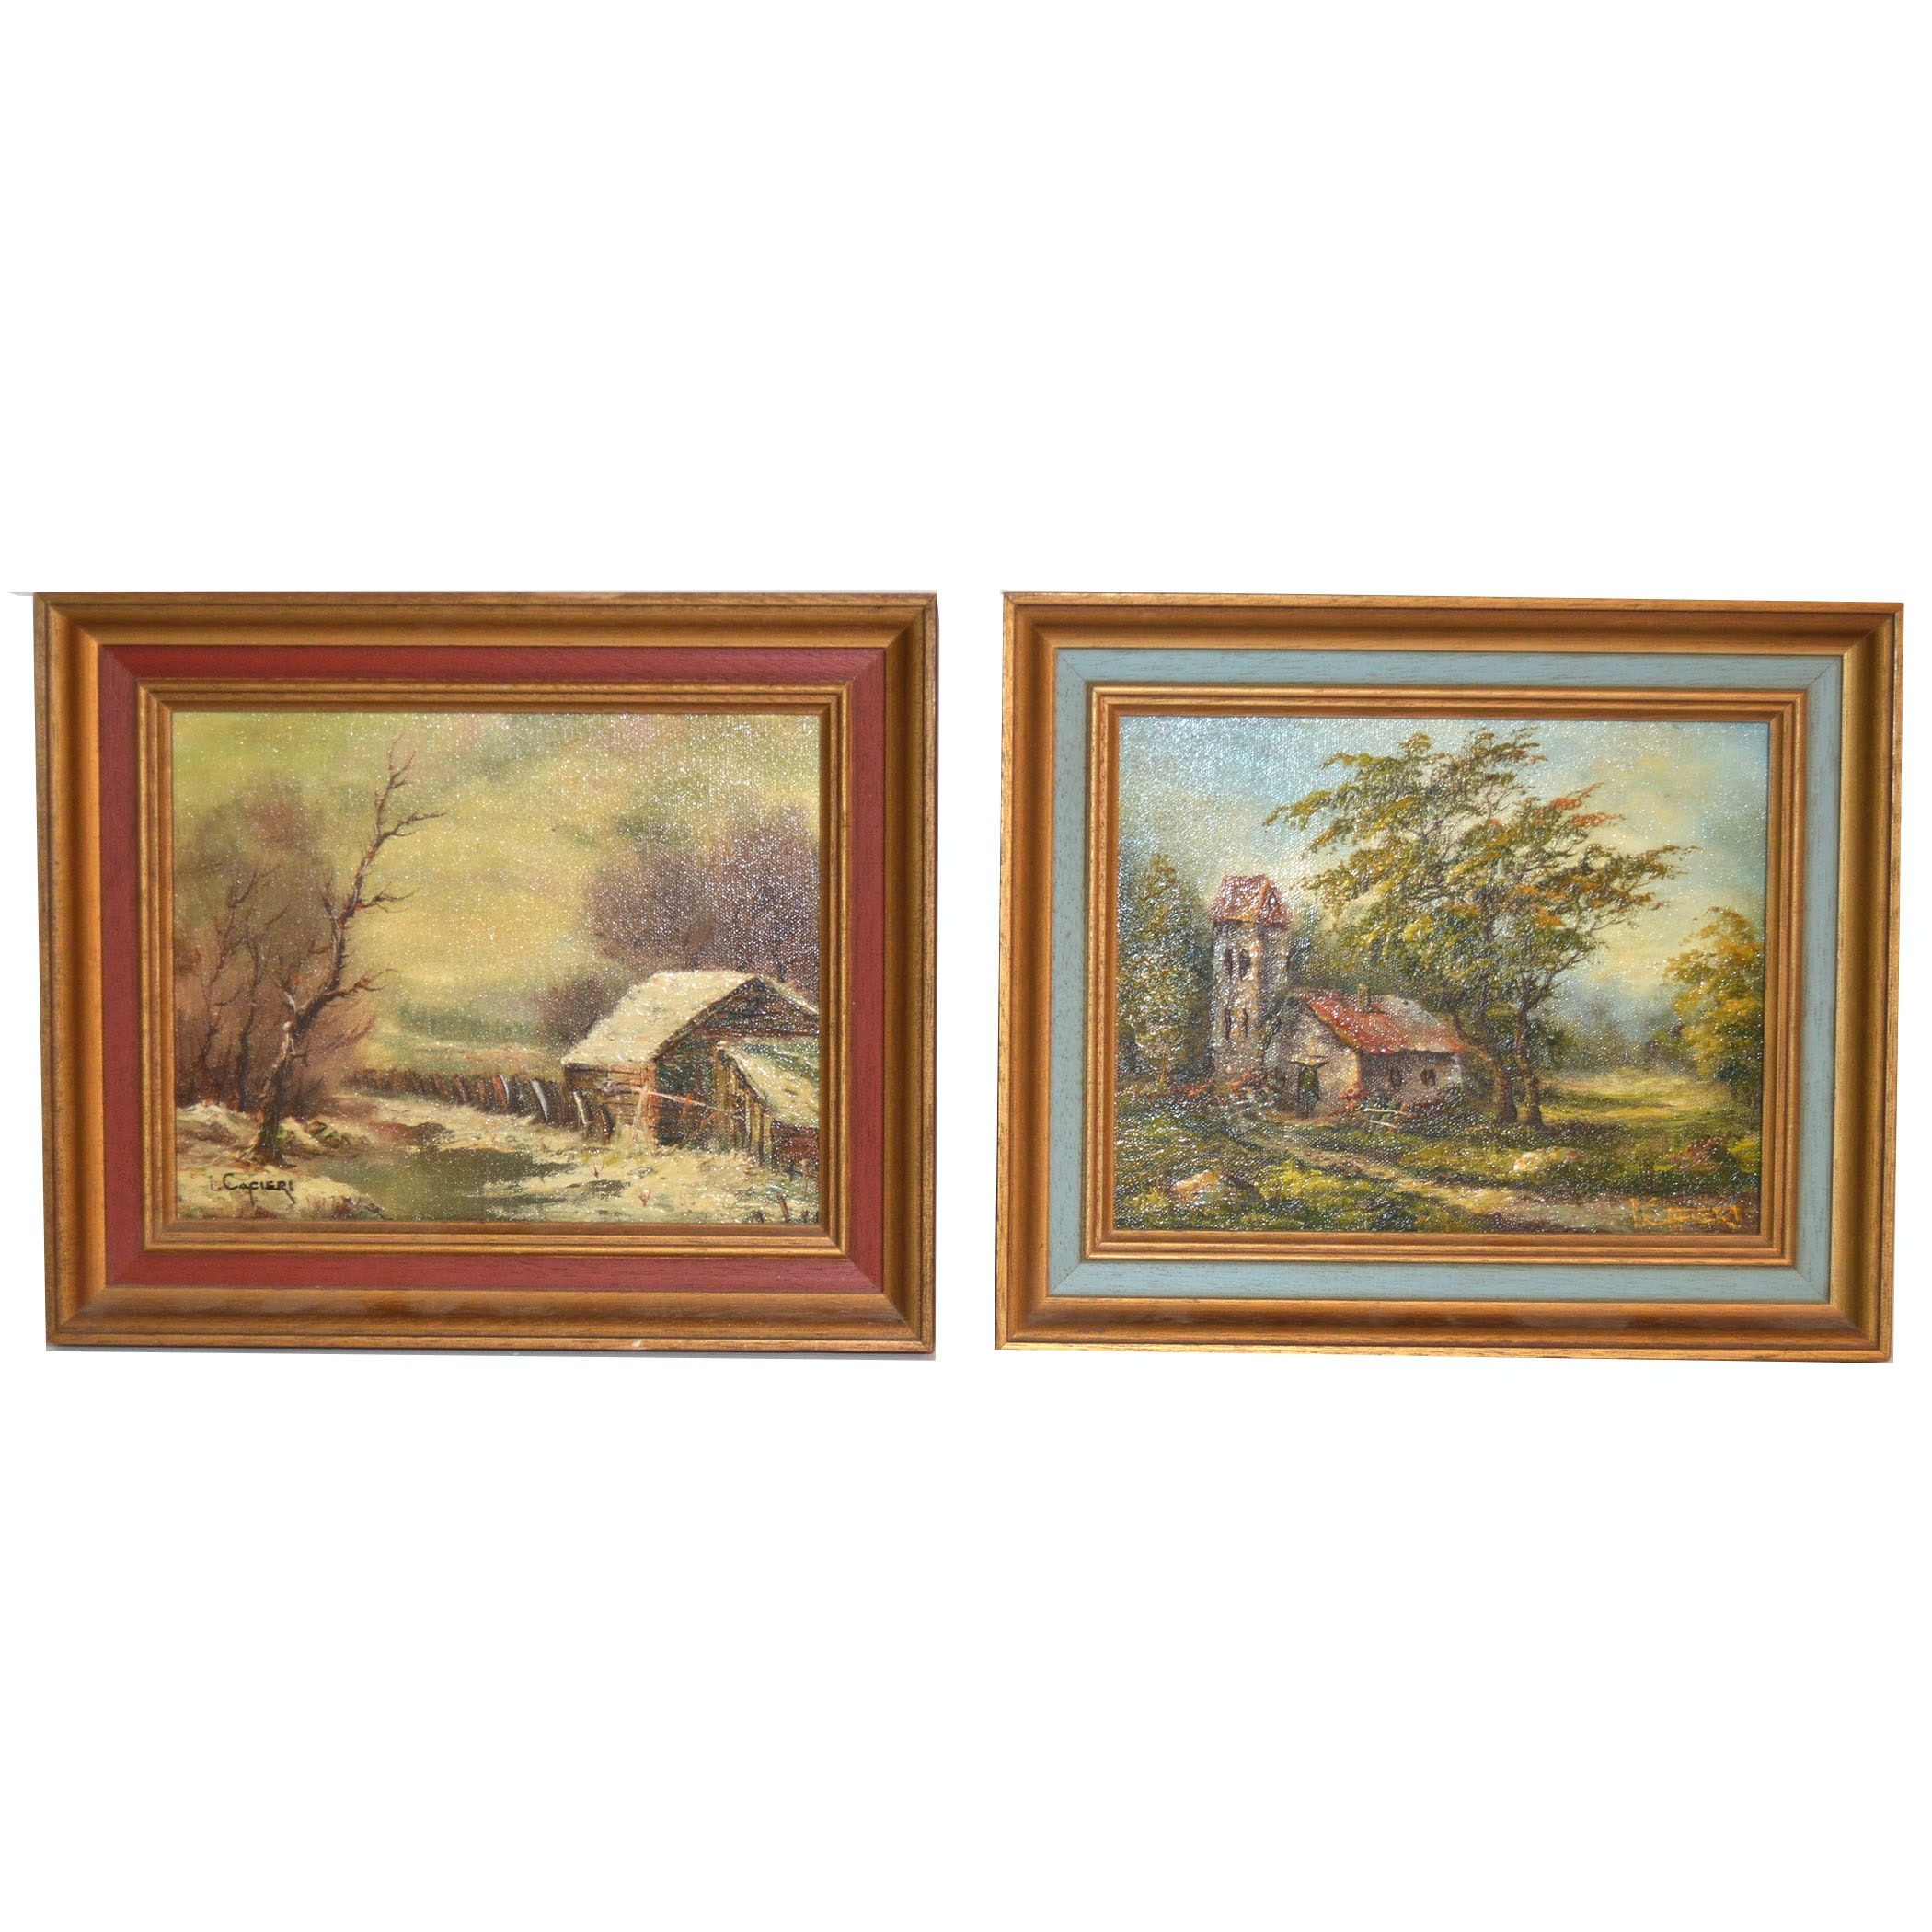 Pair of Vintage Landscape Oil Paintings by Cafieri